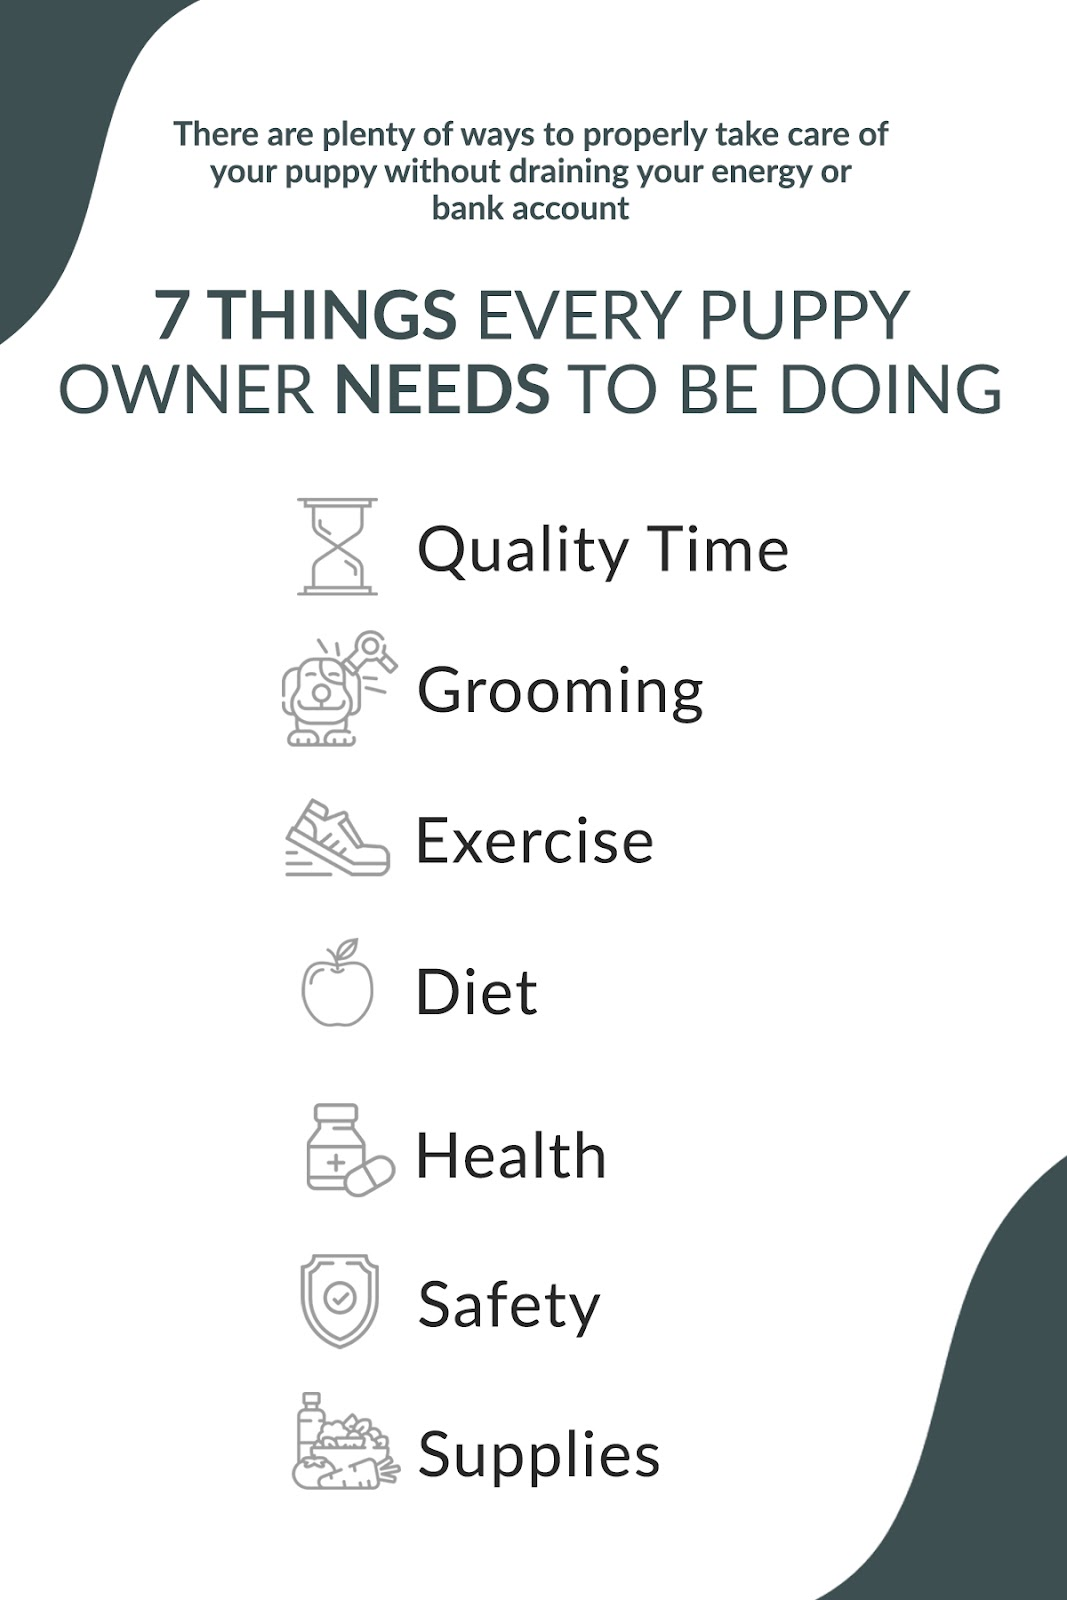 how to properly care for your puppy on a budget